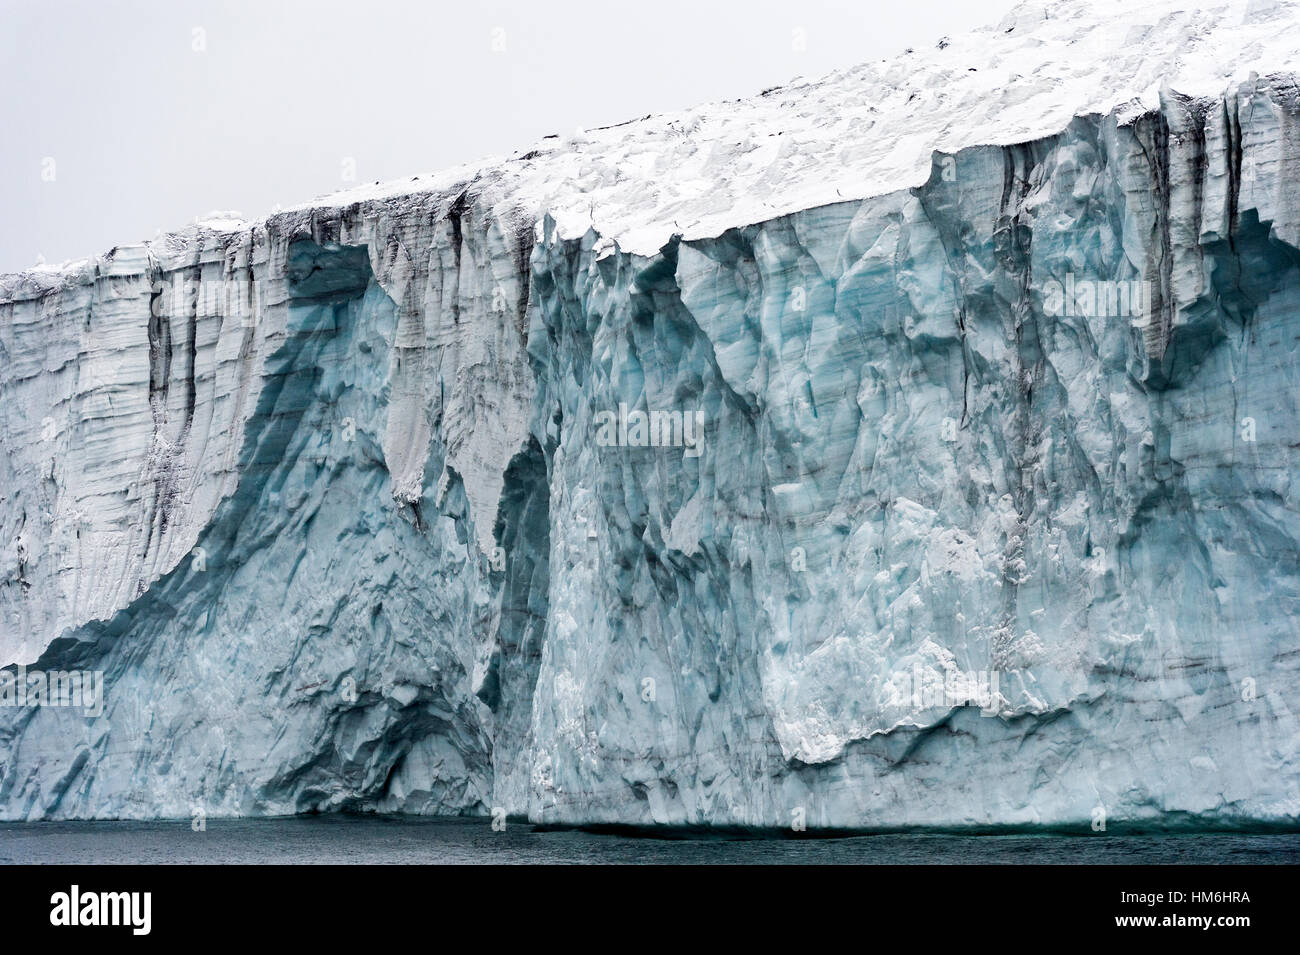 The tortured ice fracture zone of a glacier above the ocean. - Stock Image